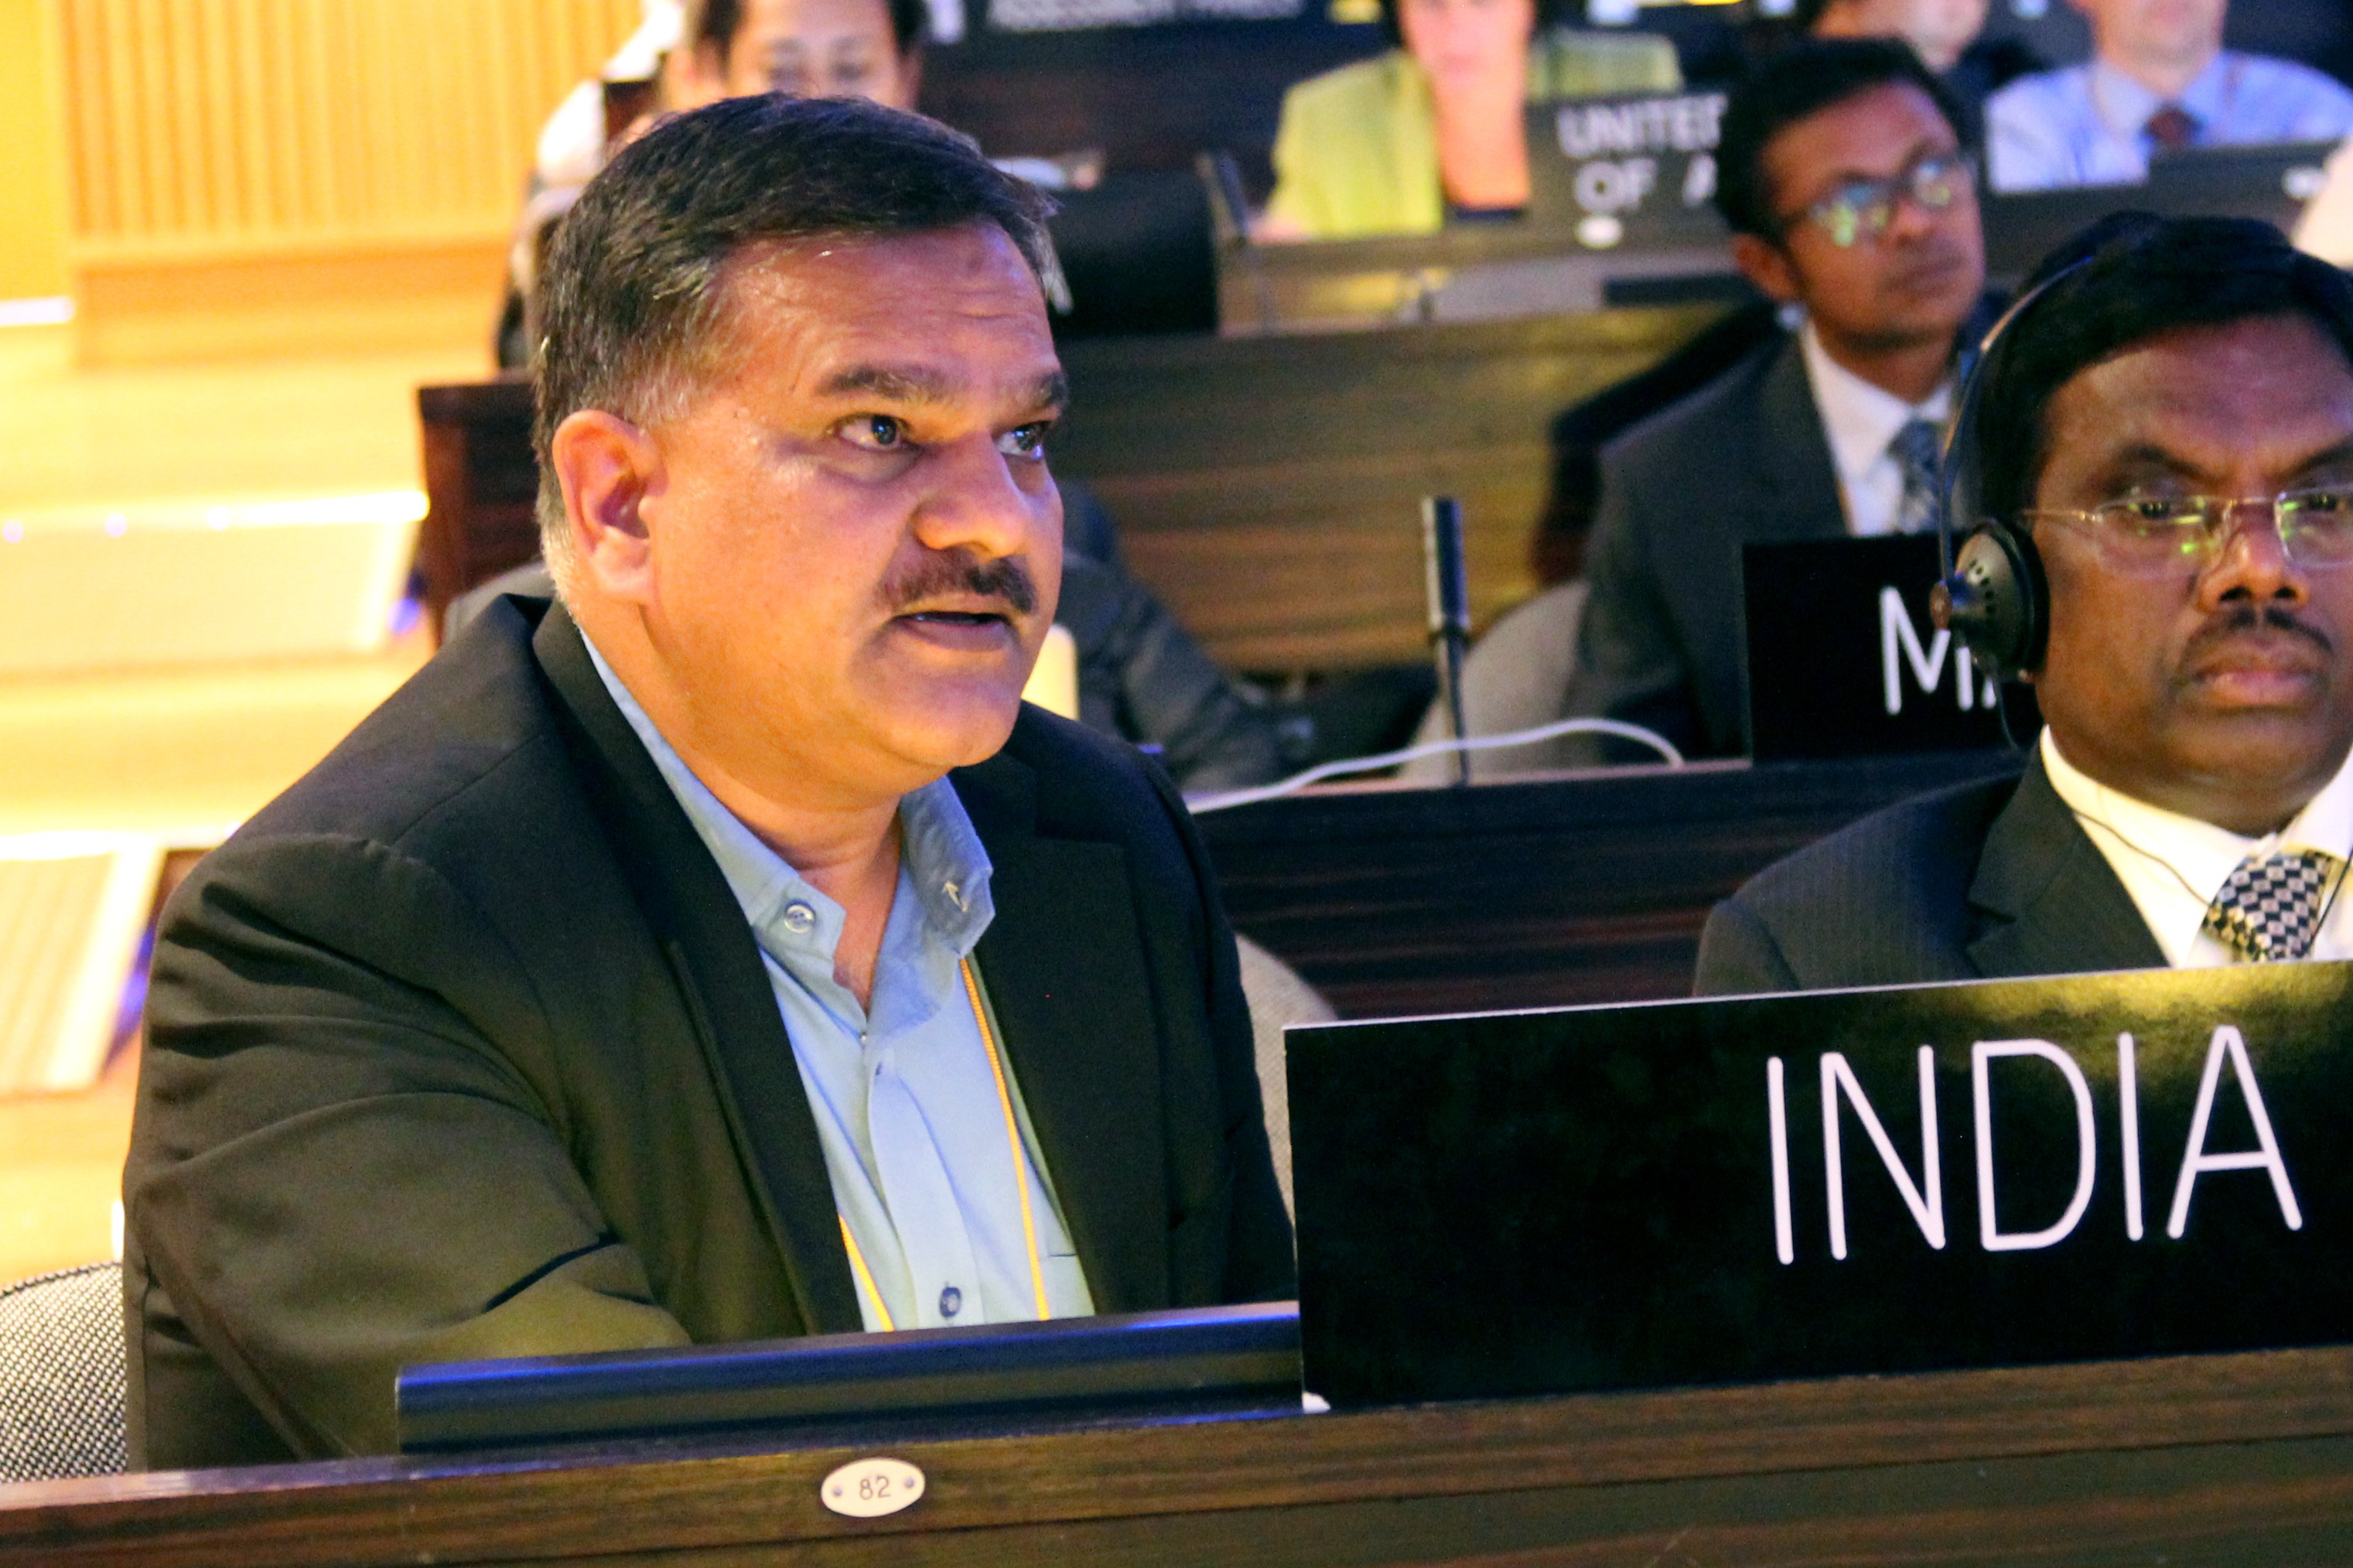 Manoj Kumar Singh, joint secretary, MoEFCC, mentioned the challenges being faced by developing countries